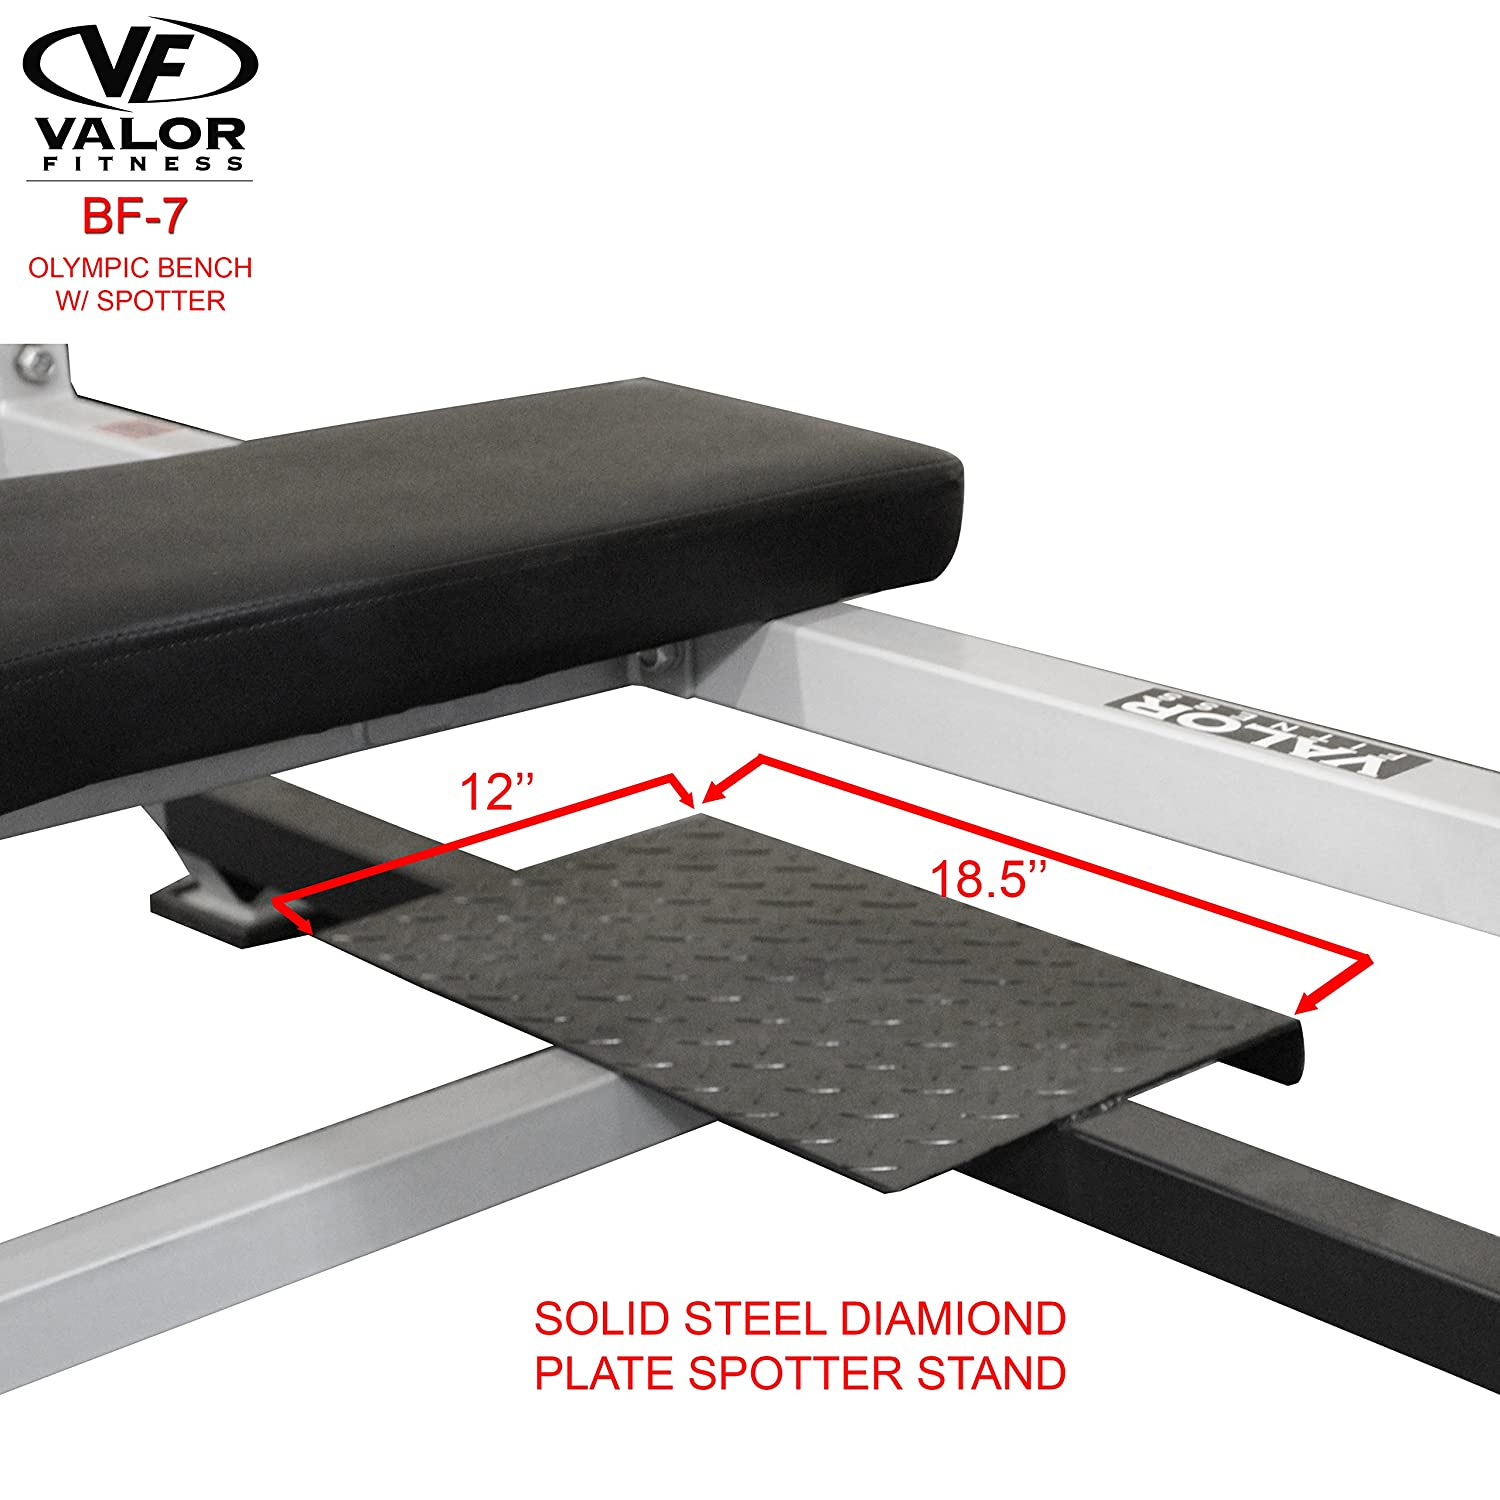 Amazoncom Valor Fitness Bf 7 Olympic Bench With Spotter Olympic Weight